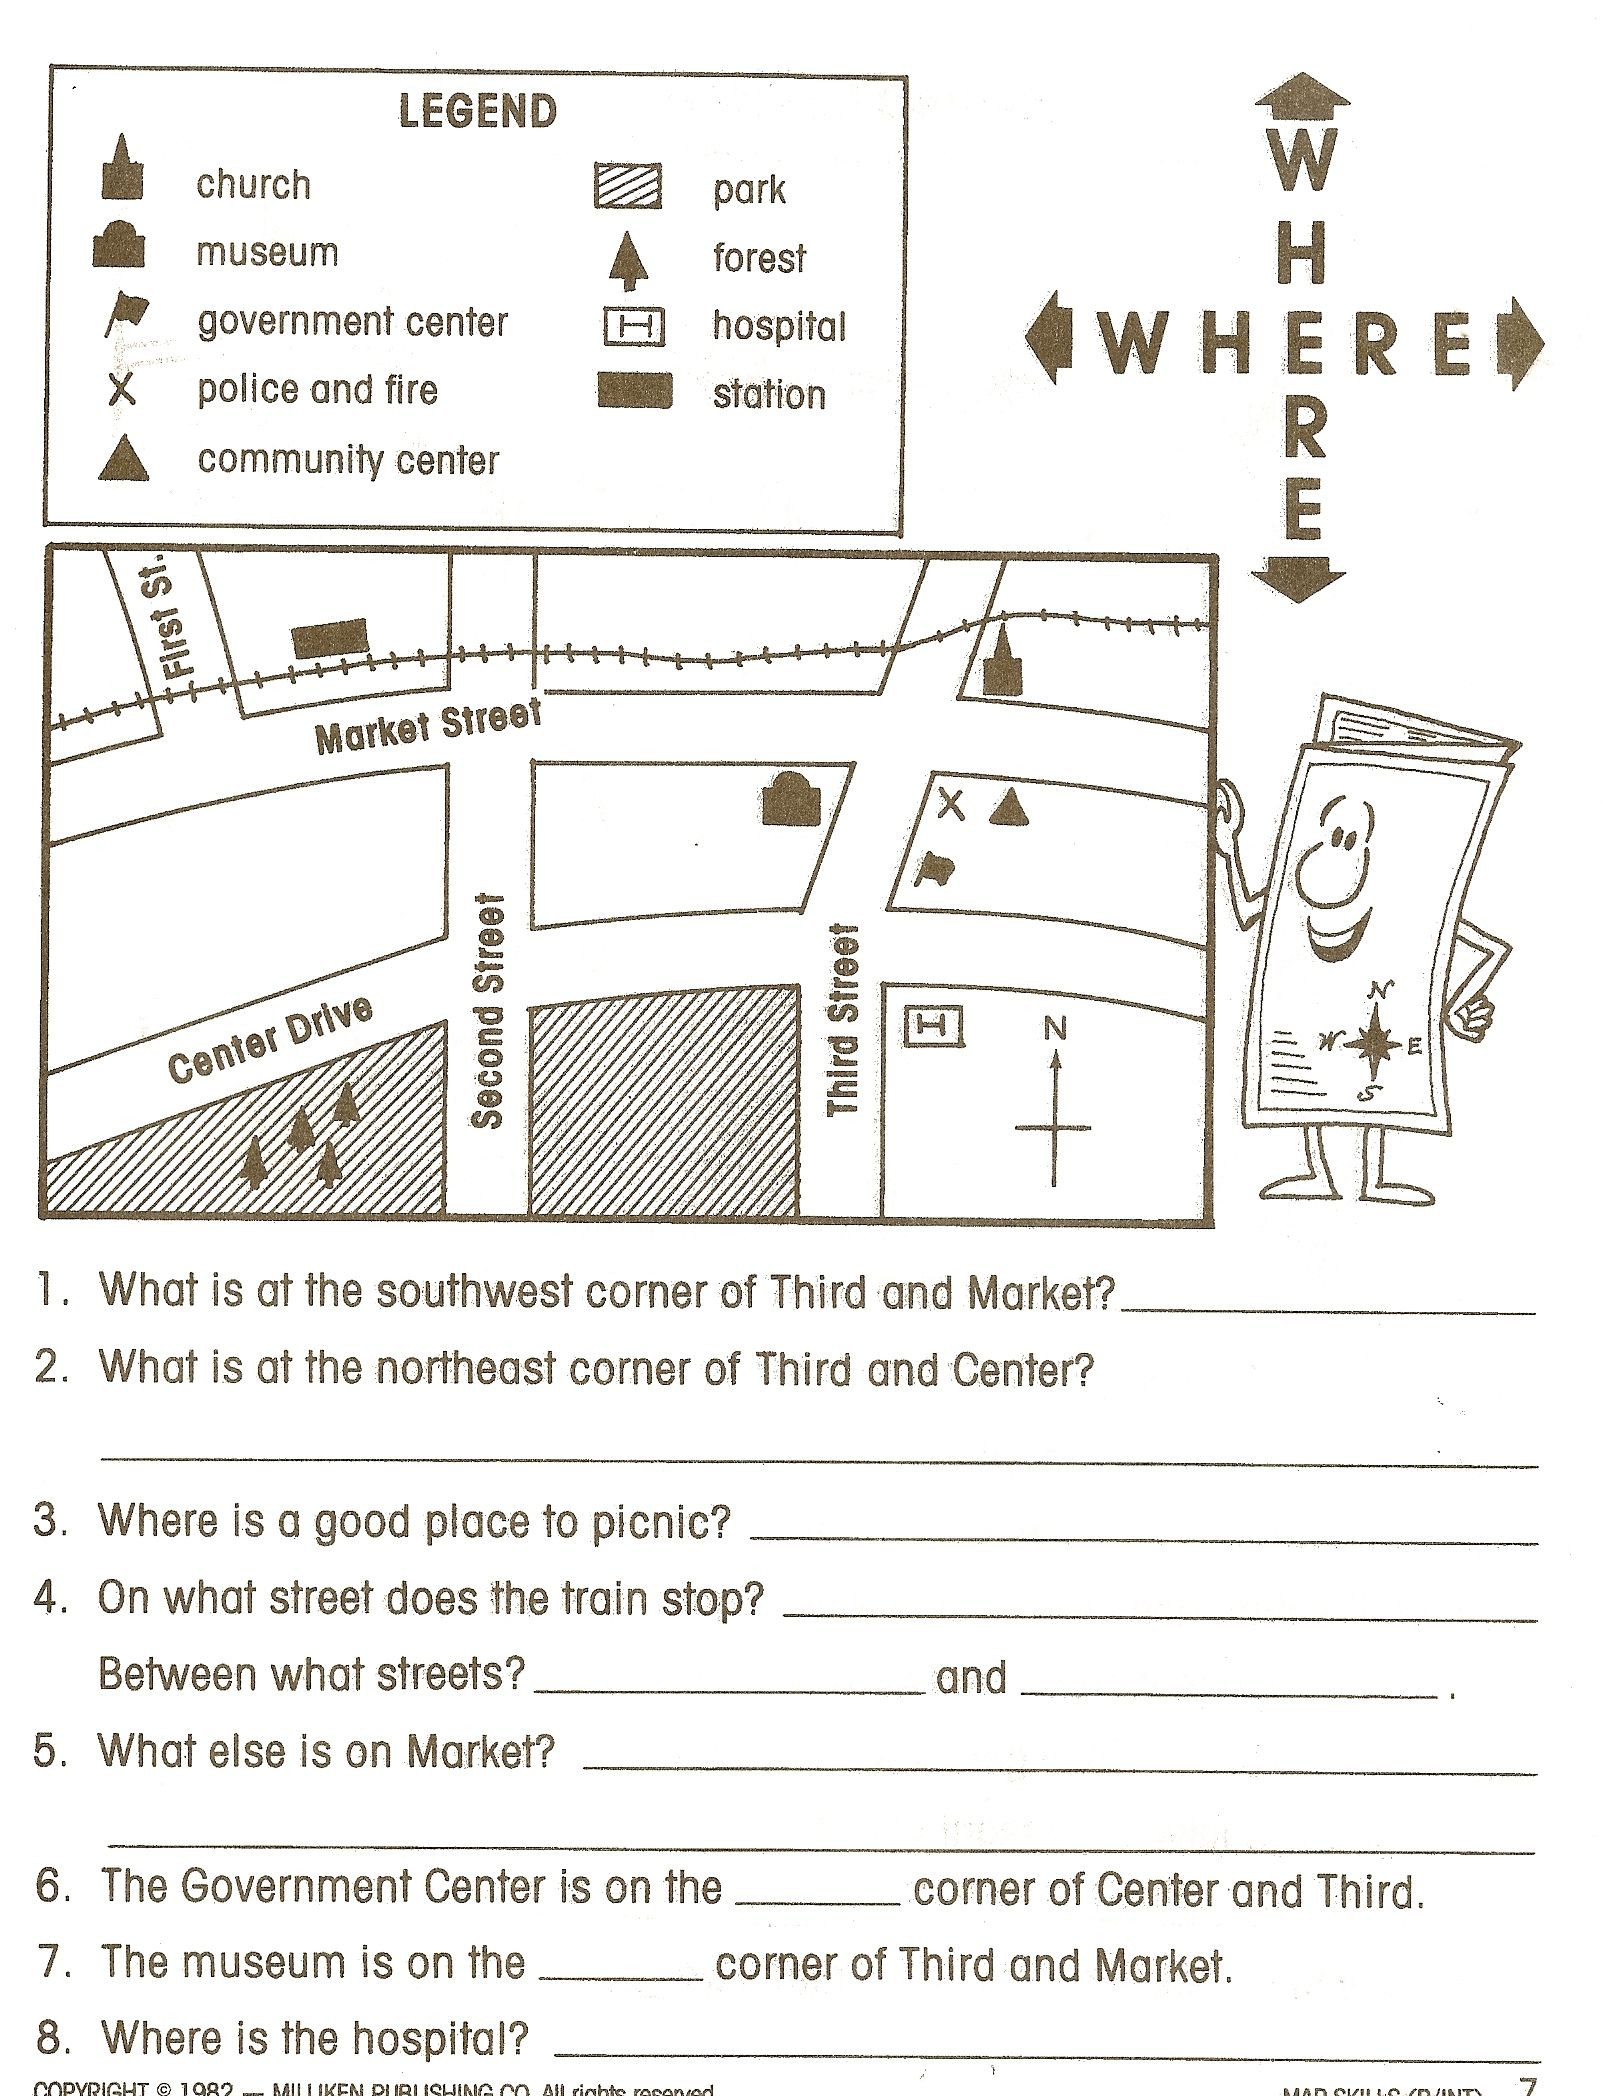 Social Studies Worksheet 3rd Grade social Stu S Worksheets Google Search